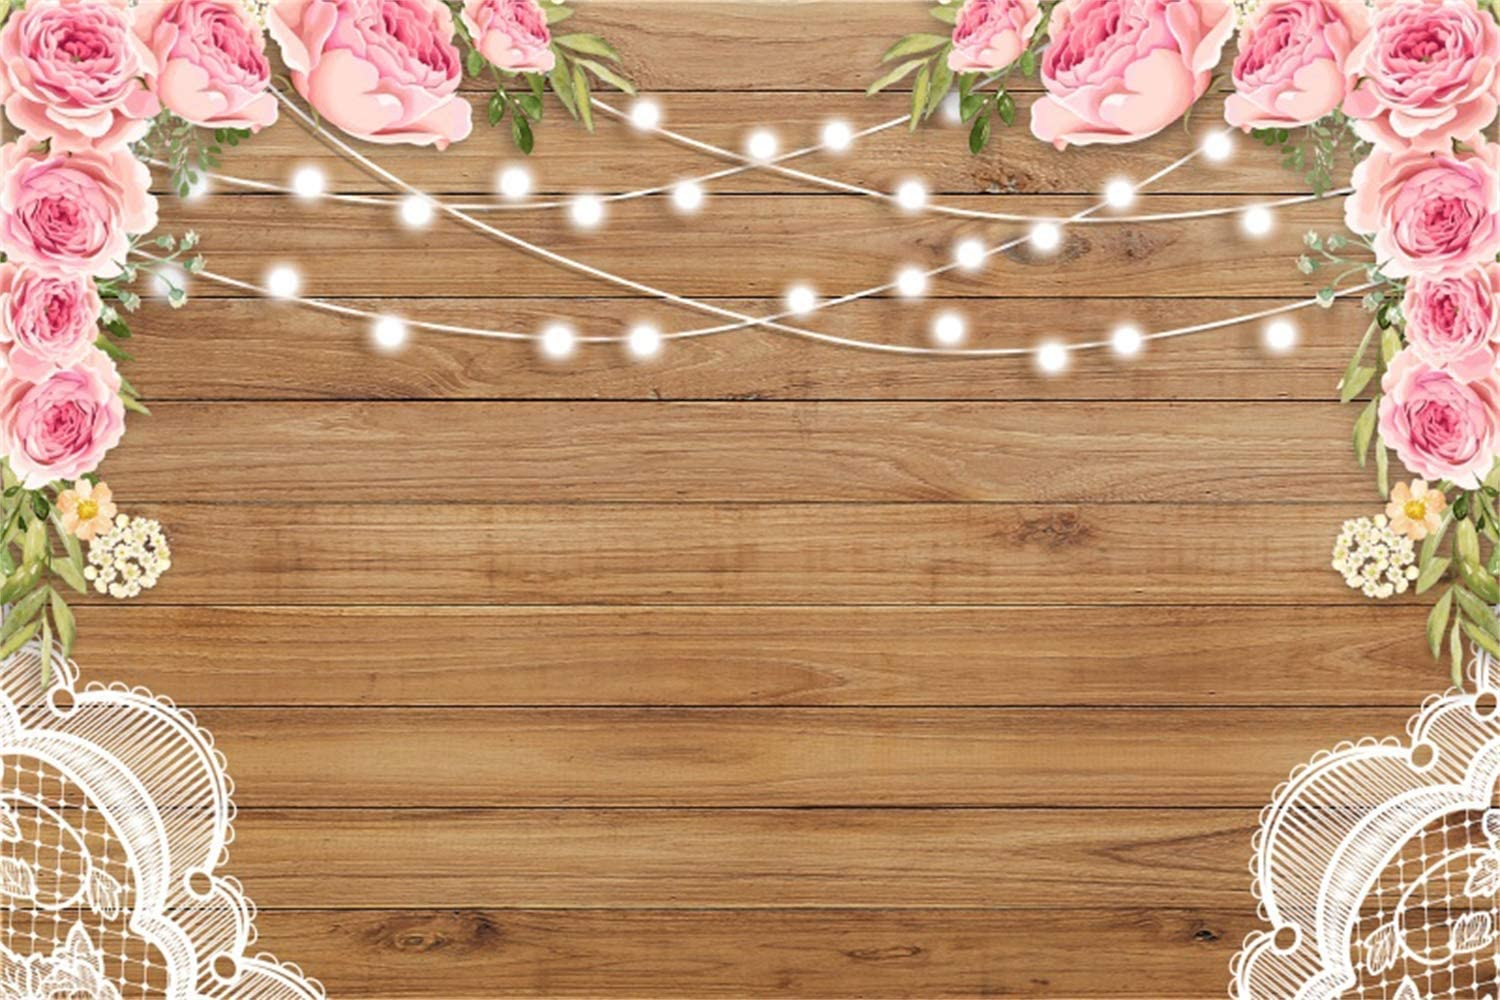 Romantic Pink Rose Flowers Light Strings White Lace Rustic Wood Plank 8x6.5ft Polyester Photography Background Girls Birthday Party Backdrop Wedding Anniversary Shoot Personal Portrait Shoot